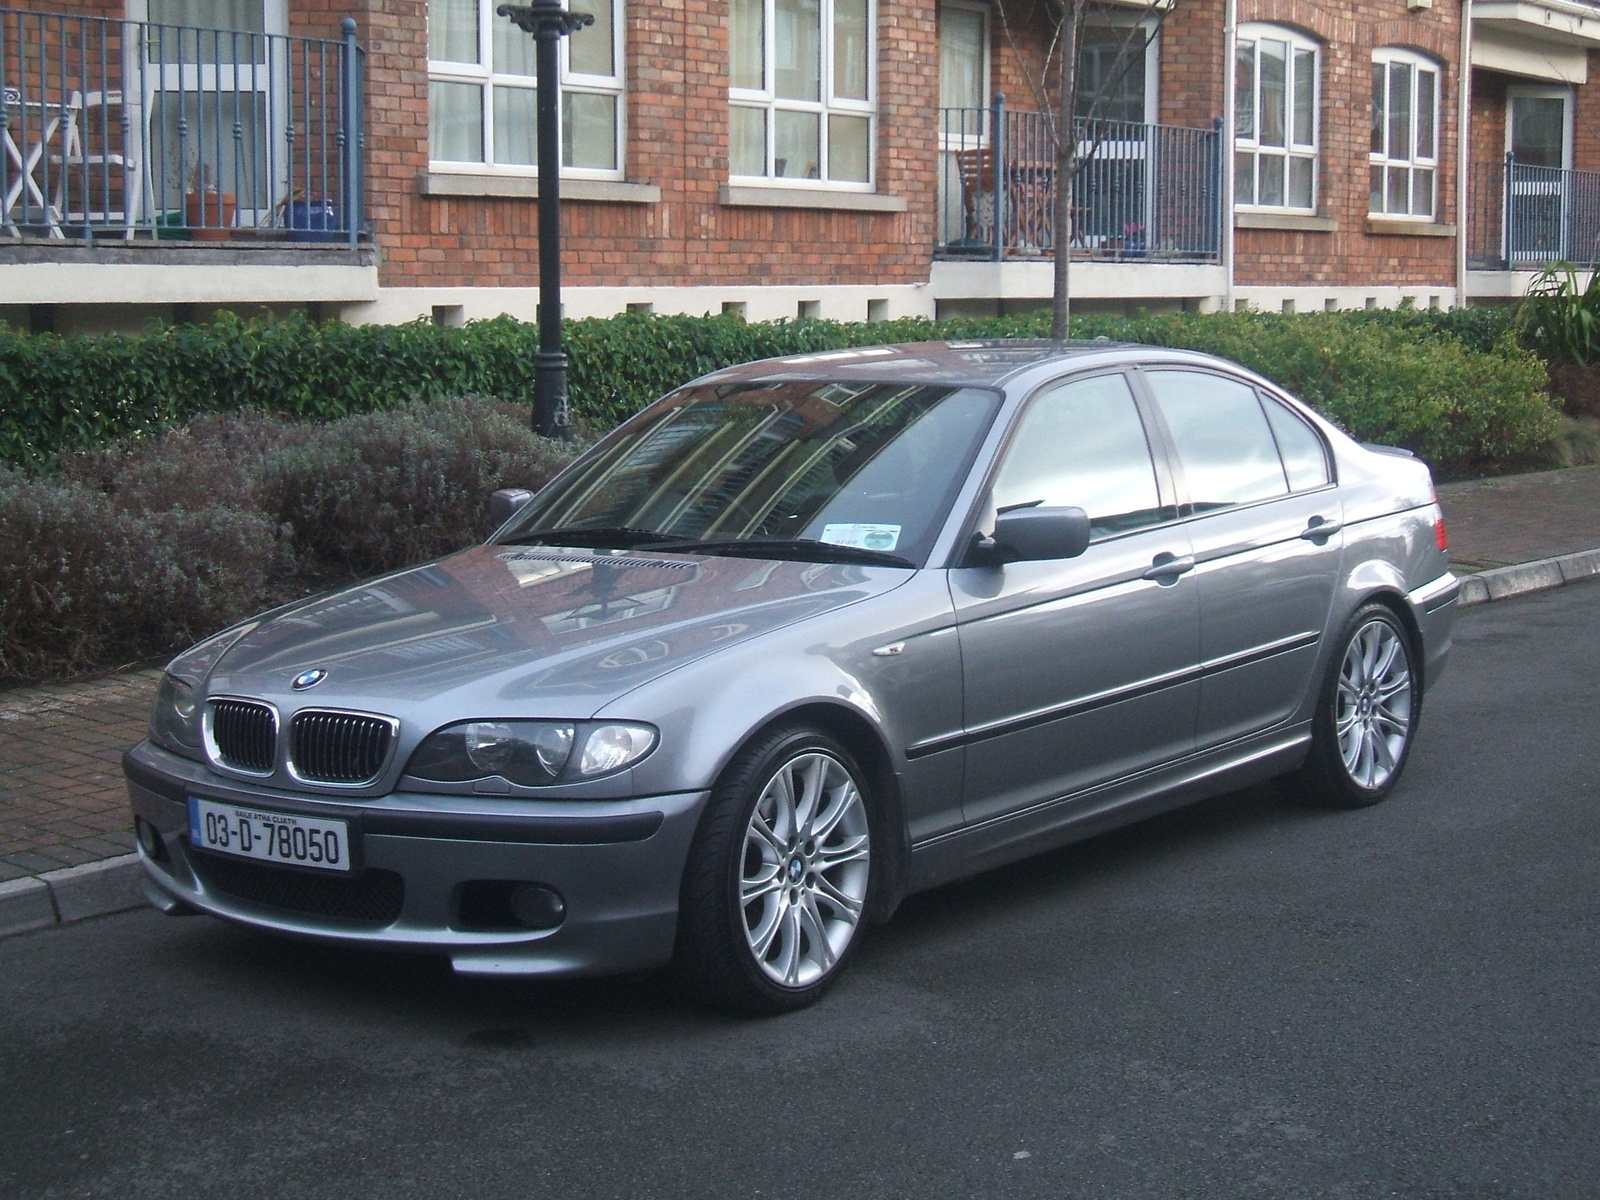 hight resolution of bmw 3 series 328i 2004 photo 1